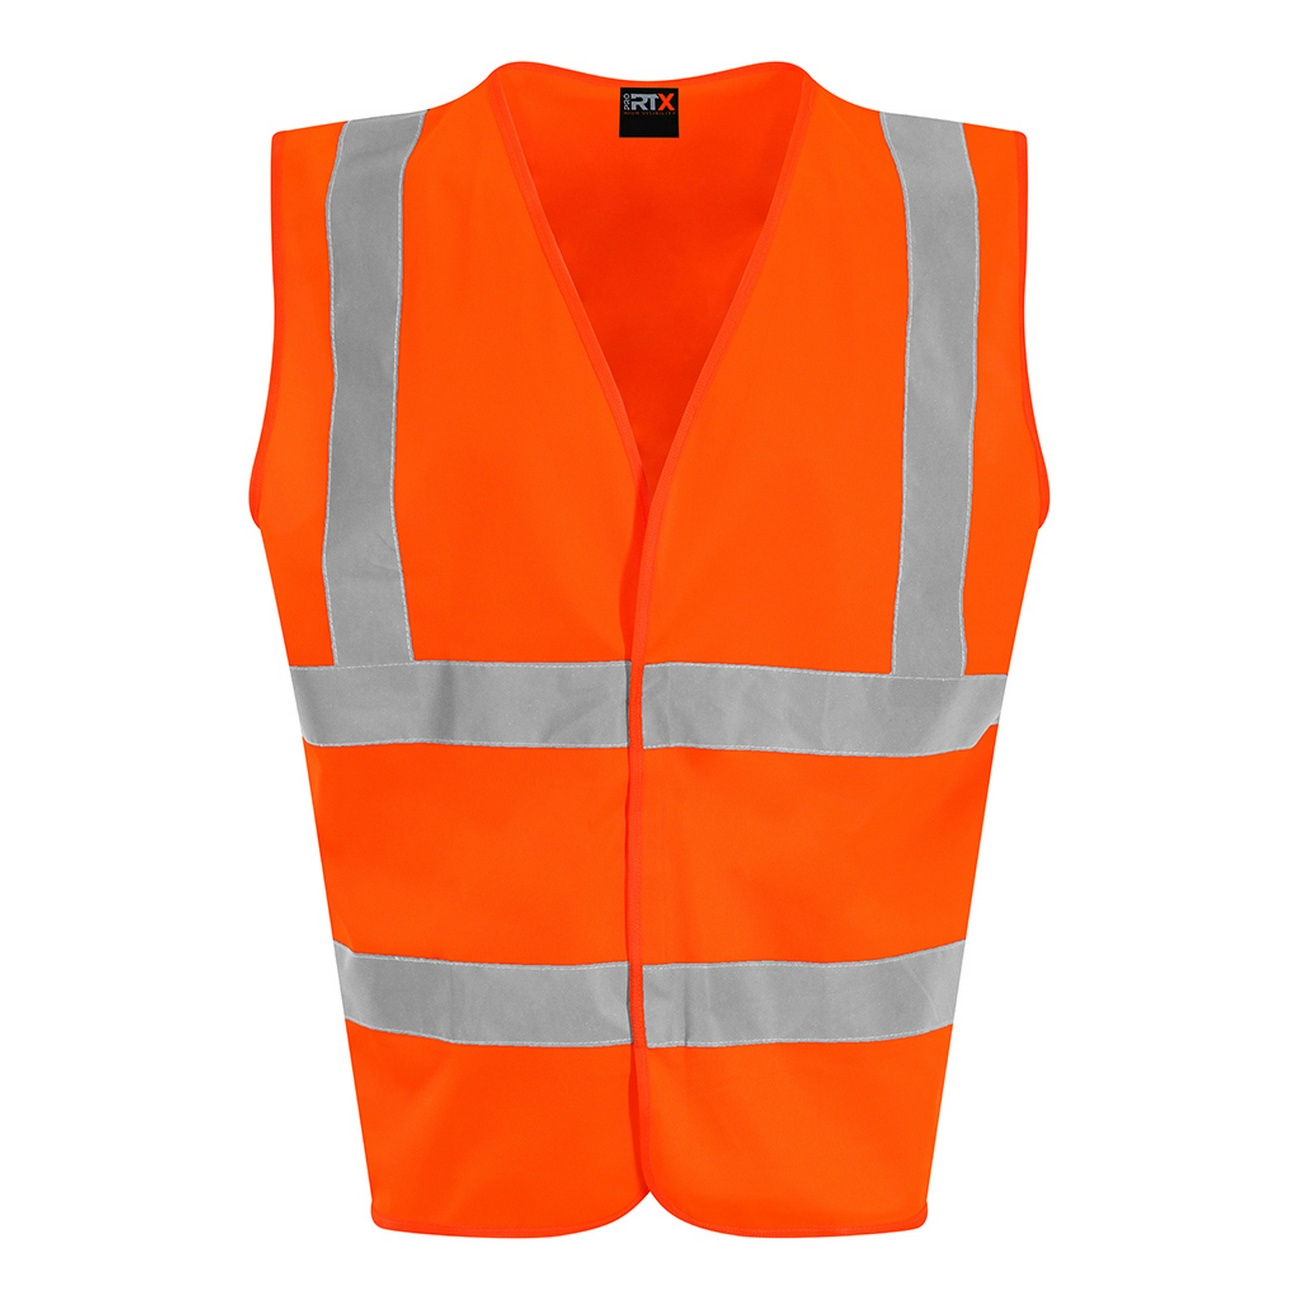 PRO RTX High Visibility Unisex Waistcoat (L) (Orange)